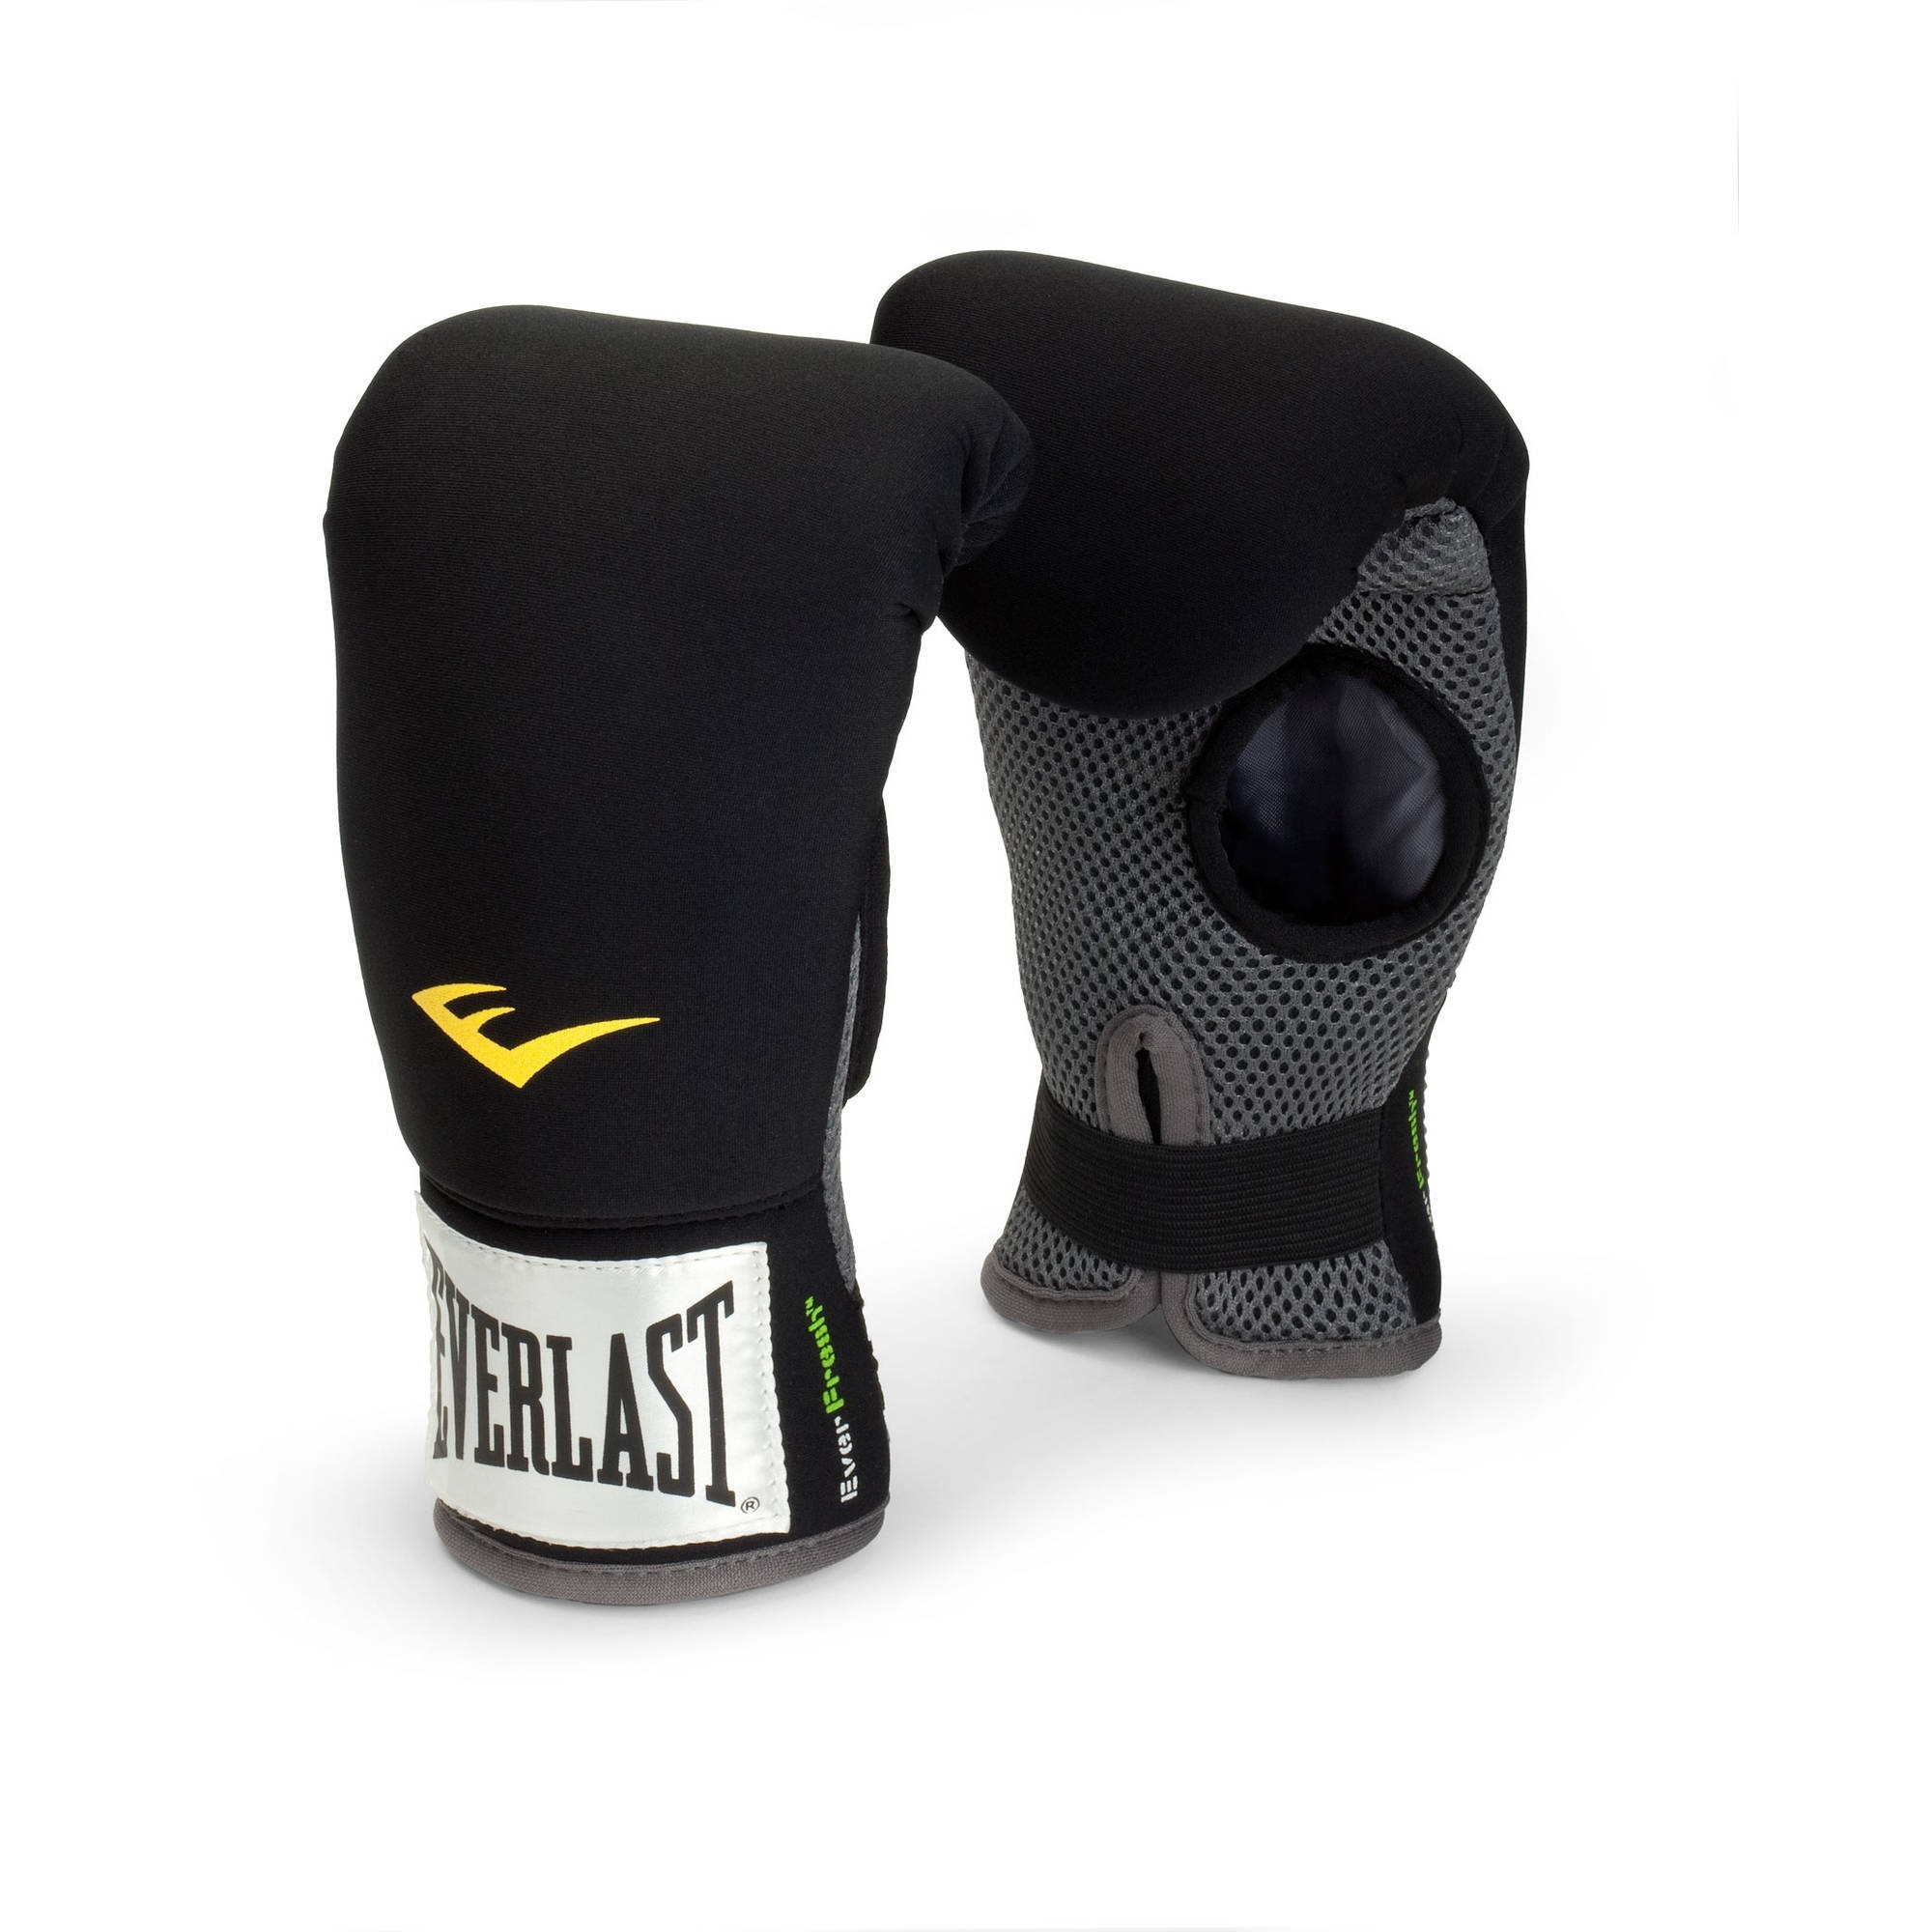 Everlast Neoprene Heavy Bag Gloves by Everlast